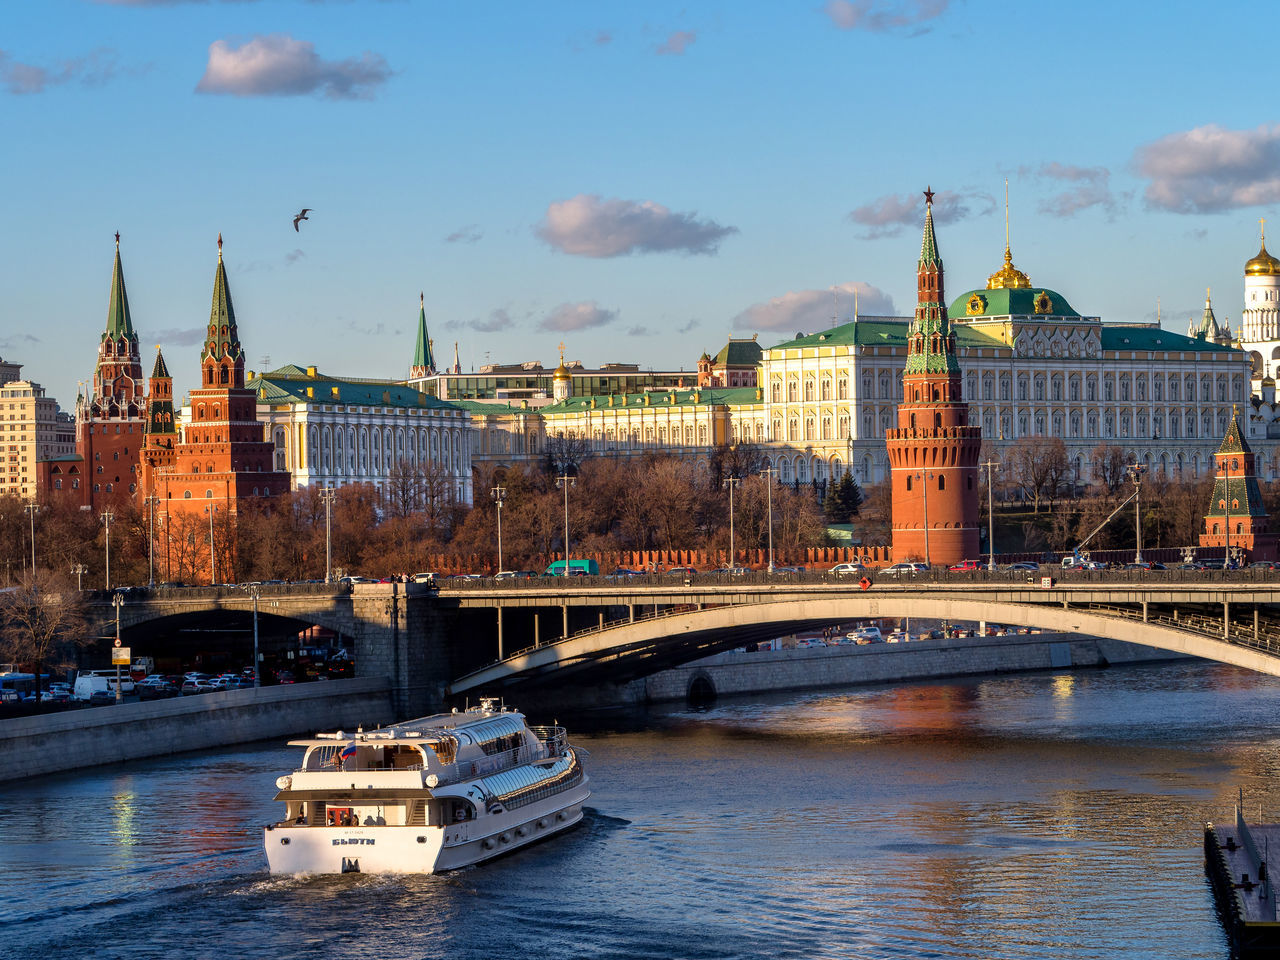 Russia, Moscow, the sunset, the Kremlin, Moscow river Architecture Bridge - Man Made Structure Building Exterior Built Structure City Cityscape Clock Clock Tower Cloud - Sky Connection Cultures Government Moscow Moscow River Nautical Vessel No People Outdoors Politics And Government River Russia Sky Sunset The Kremlin Tourboat Travel